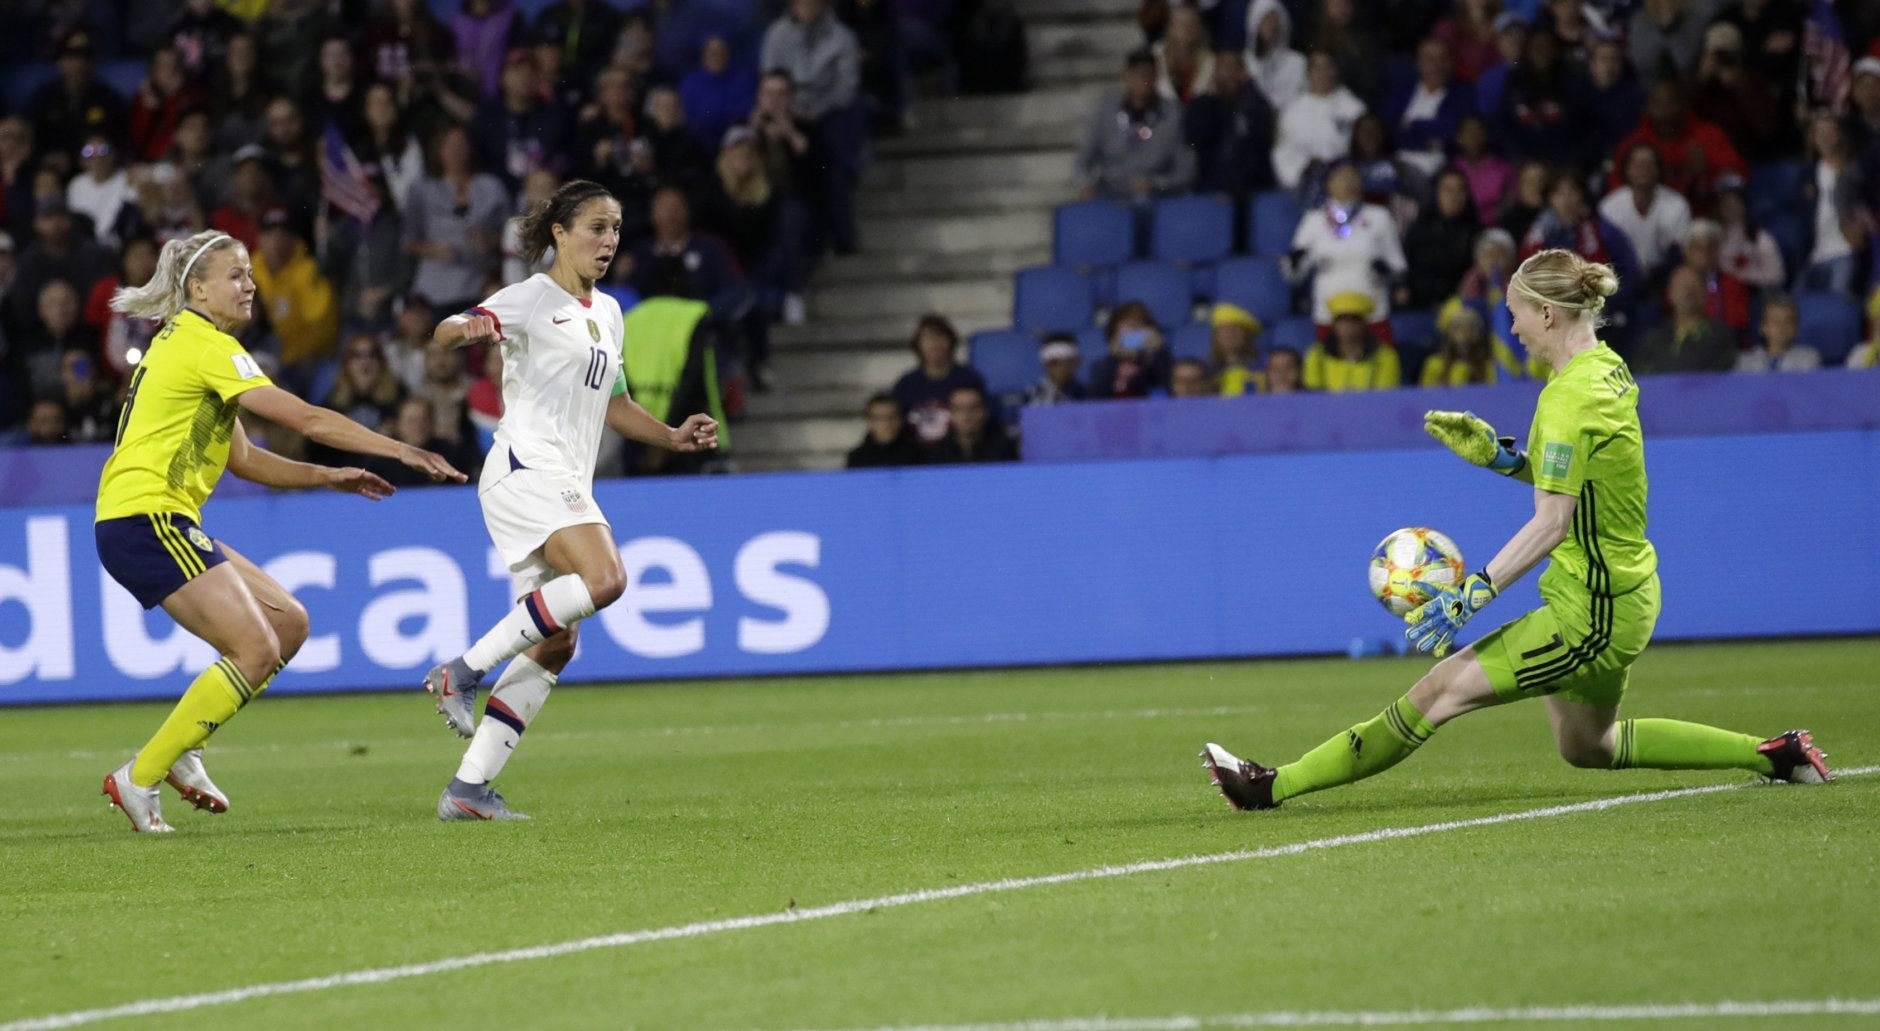 Sweden goalkeeper Hedvig Lindahl, right, blocks shot from United States' Carli Lloyd, centre, during the Women's World Cup Group F soccer match between Sweden and the United States at Stade Océane, in Le Havre, France, Thursday, June 20, 2019. (AP Photo/Alessandra Tarantino)